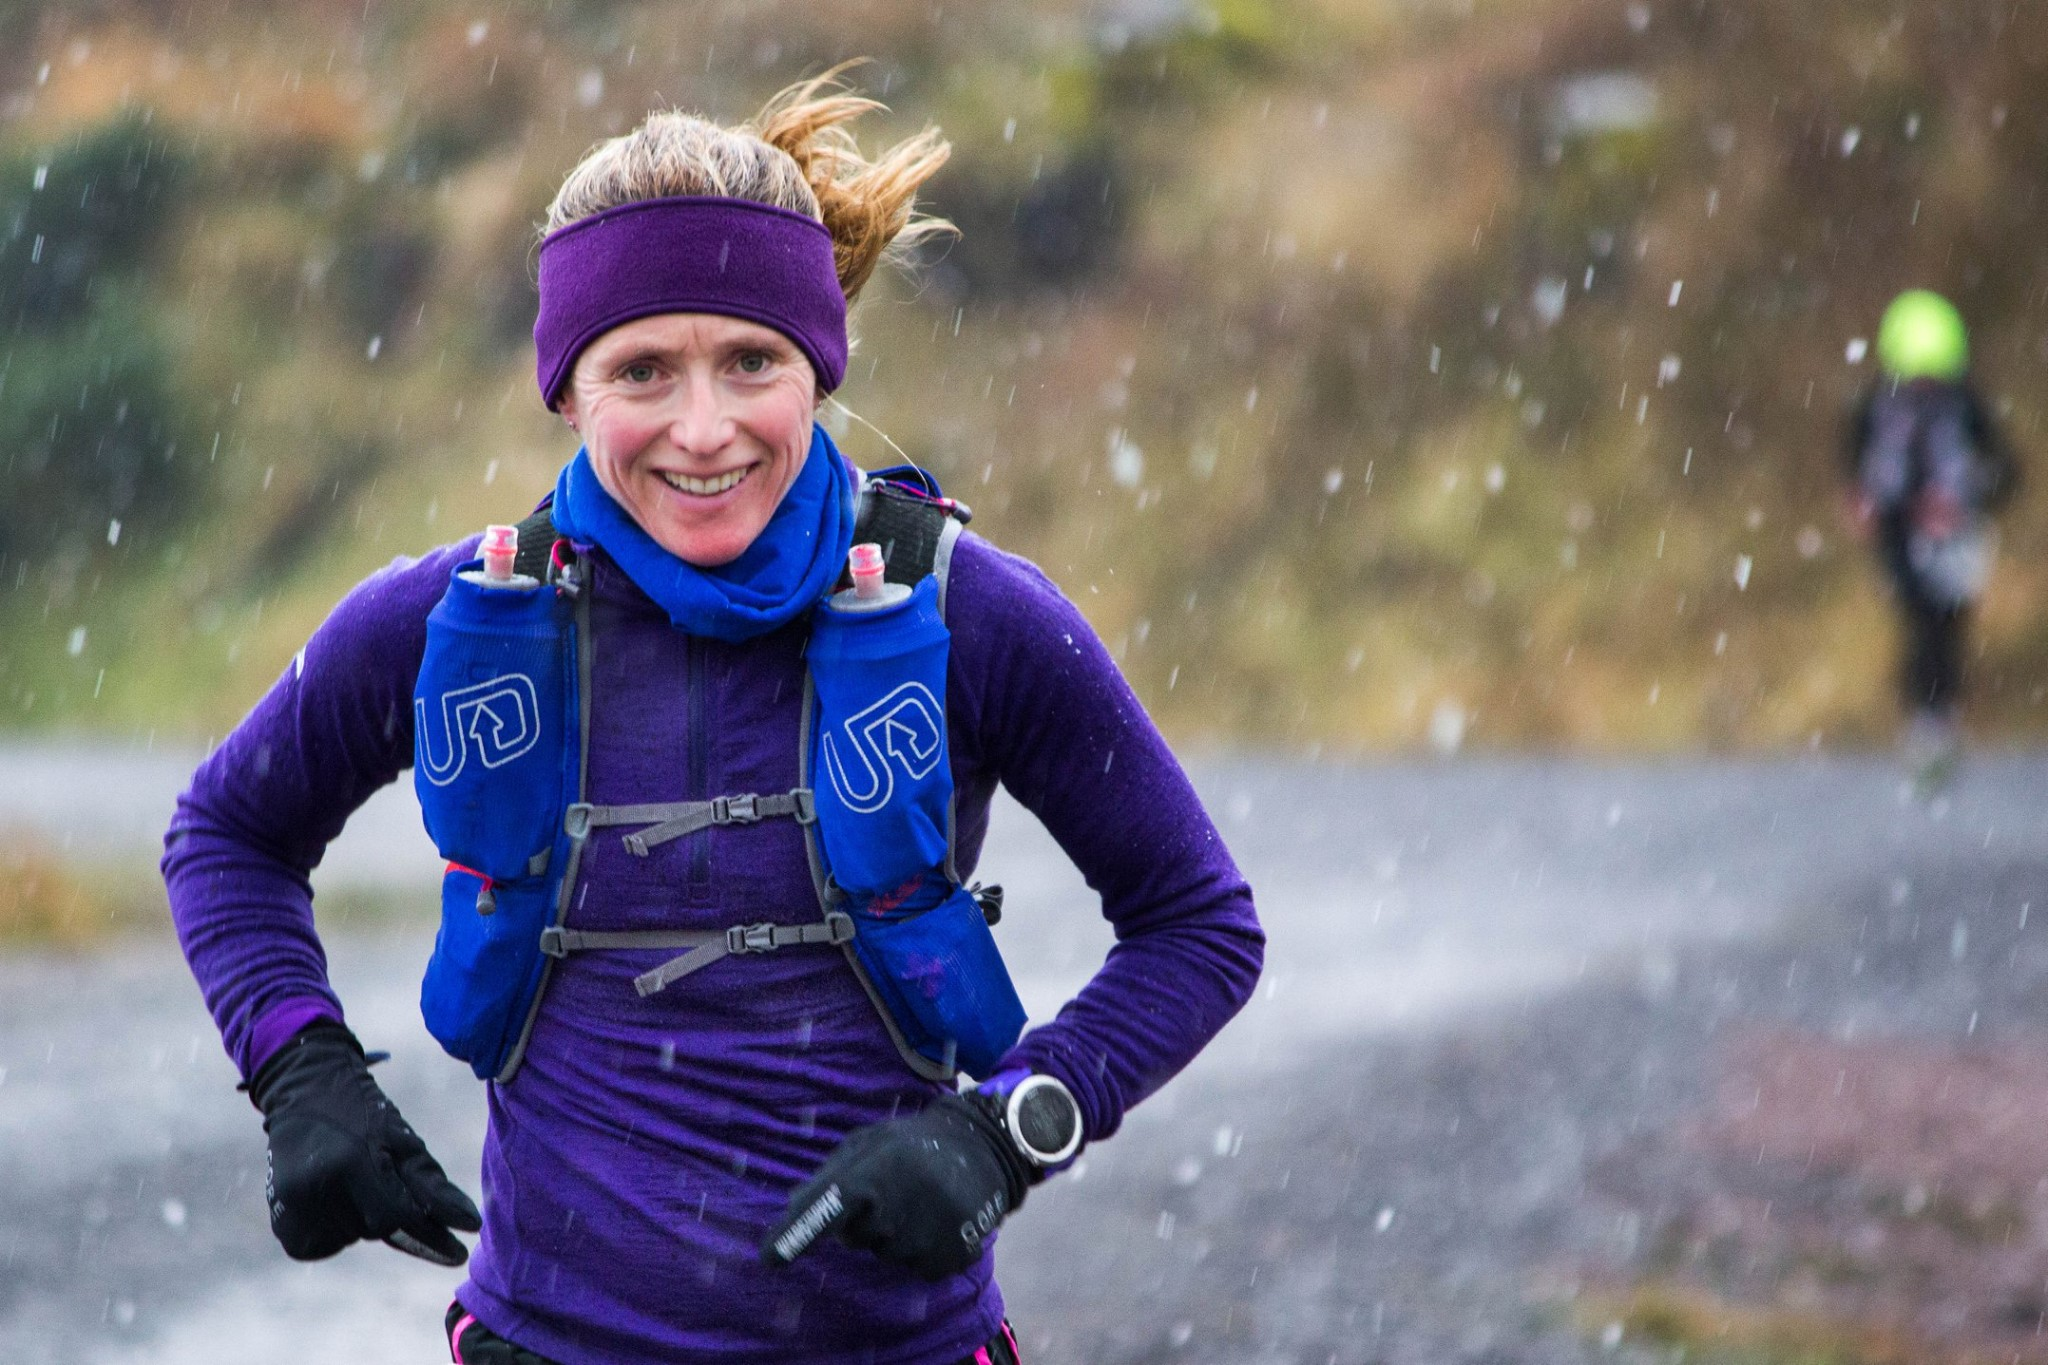 Michelle winning the Beacons Ultra